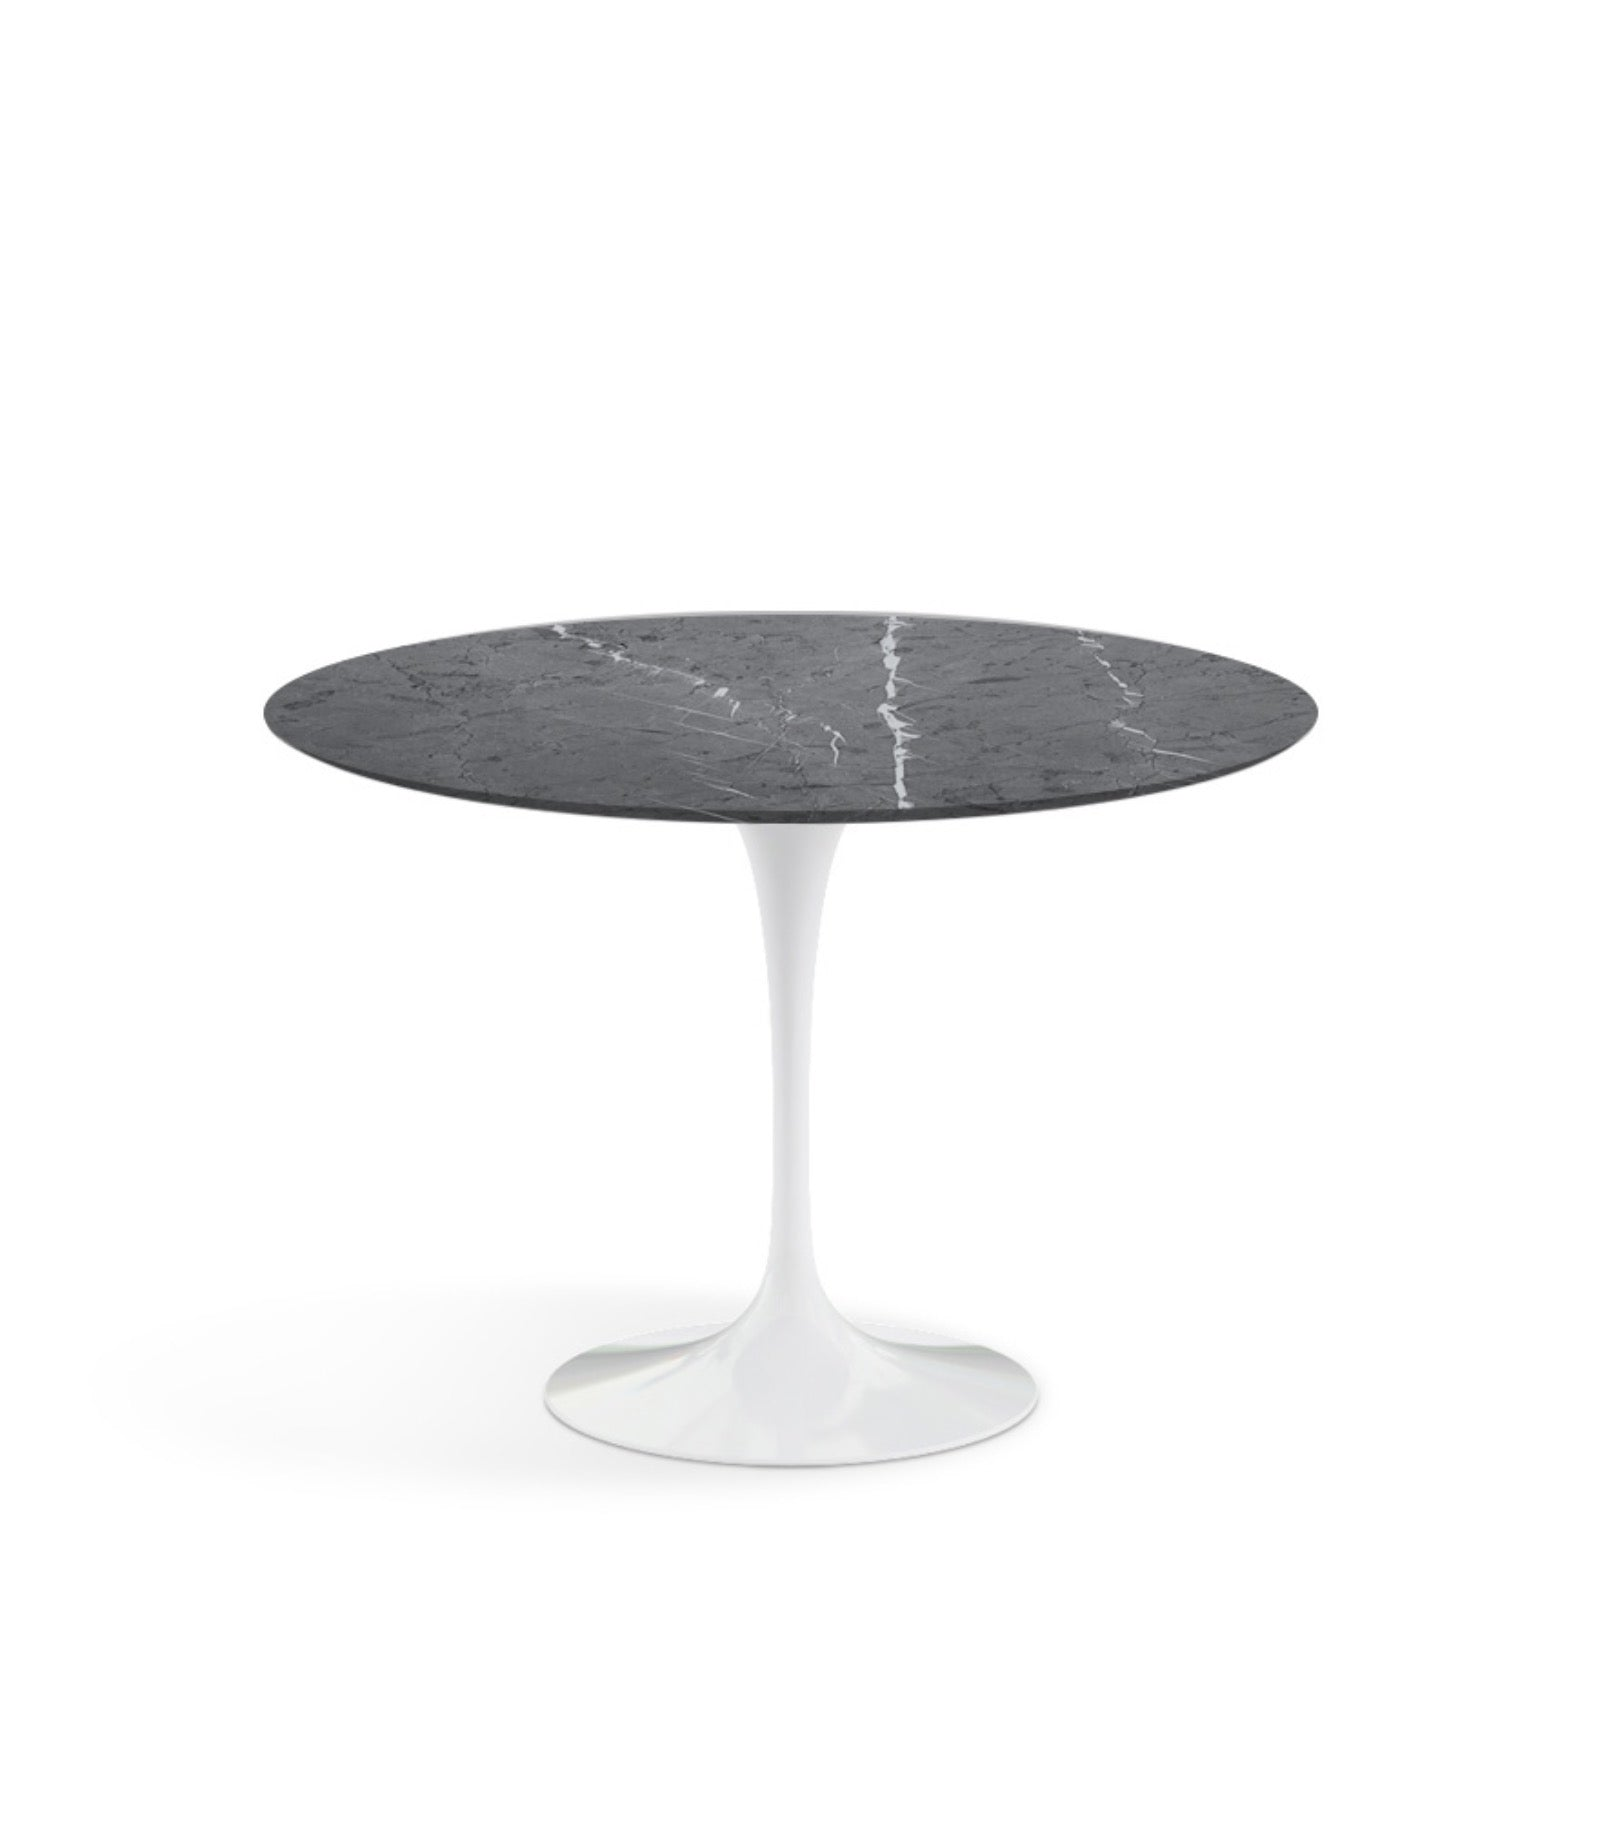 Saarinen Tulip High Tables Round